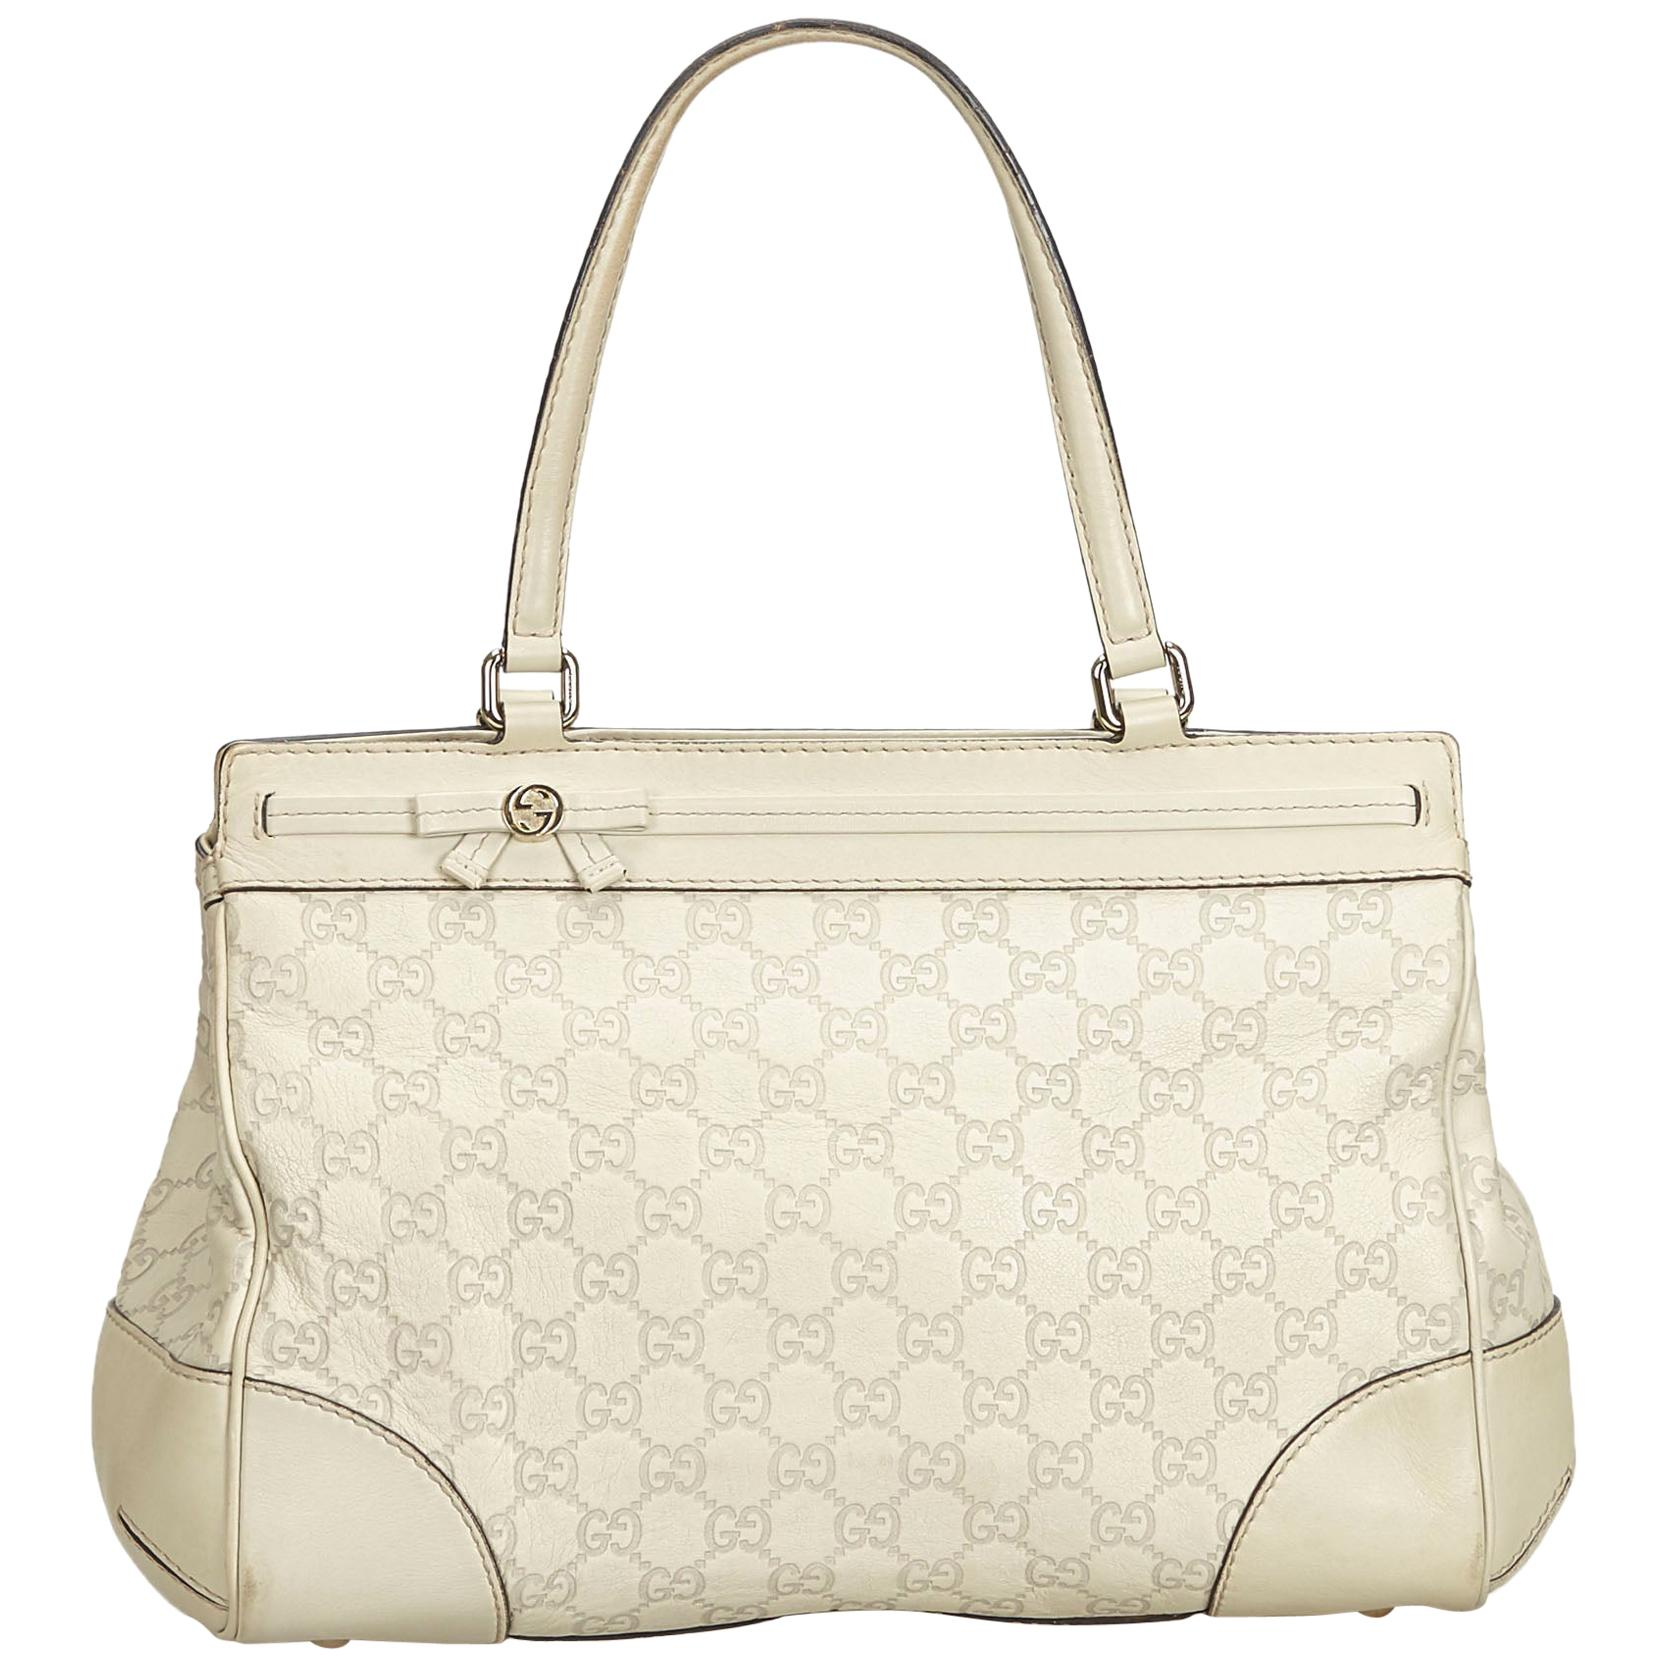 8664ce8a1f4d Vintage Gucci Tote Bags - 410 For Sale at 1stdibs